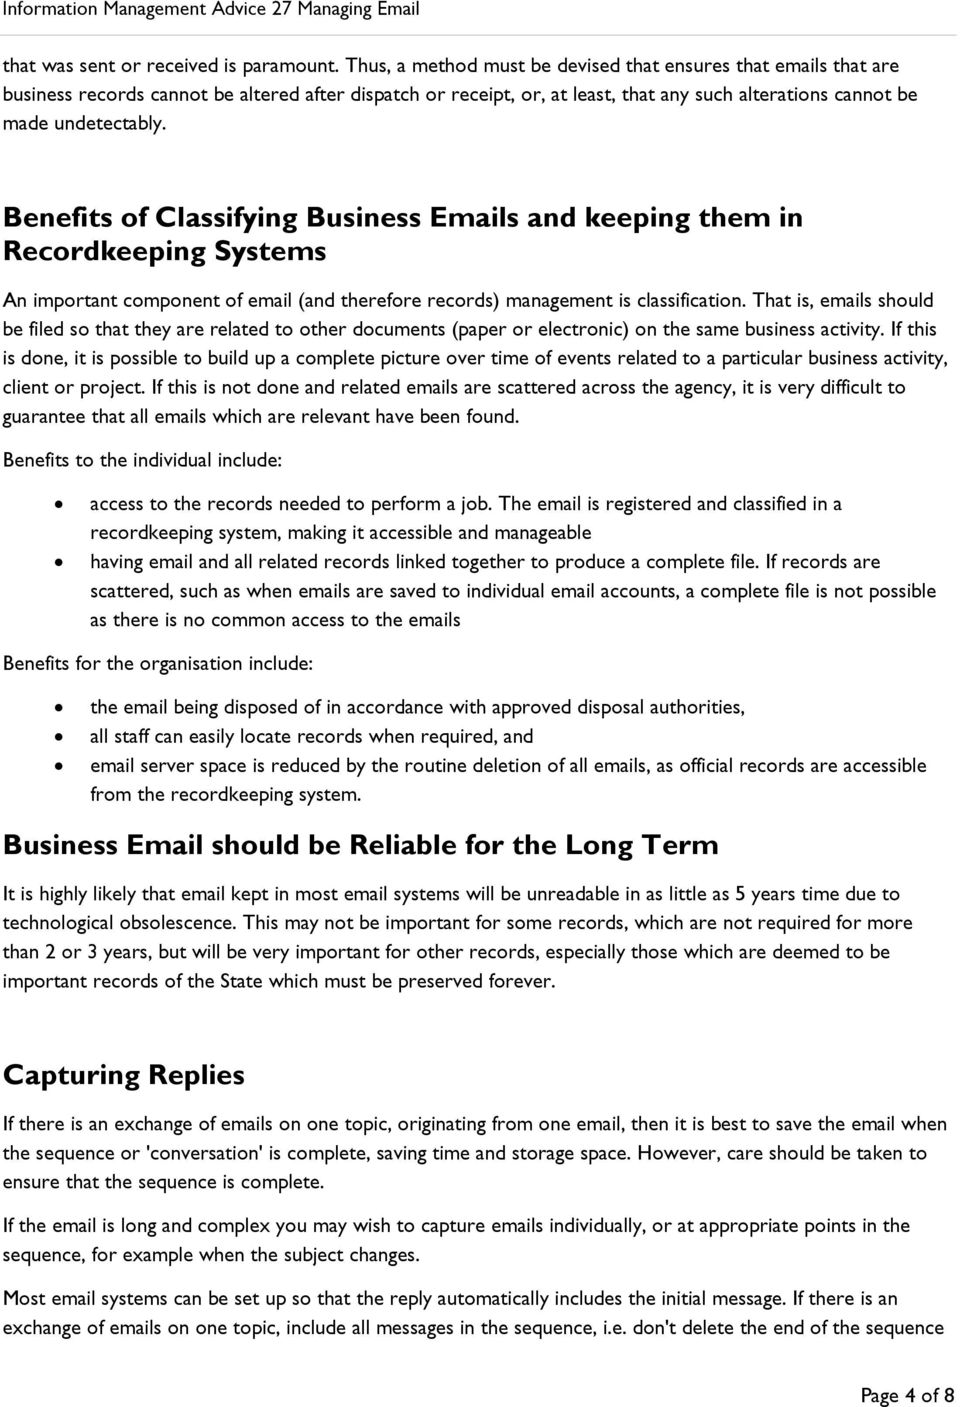 Benefits of Classifying Business Emails and keeping them in Recordkeeping Systems An important component of email (and therefore records) management is classification.